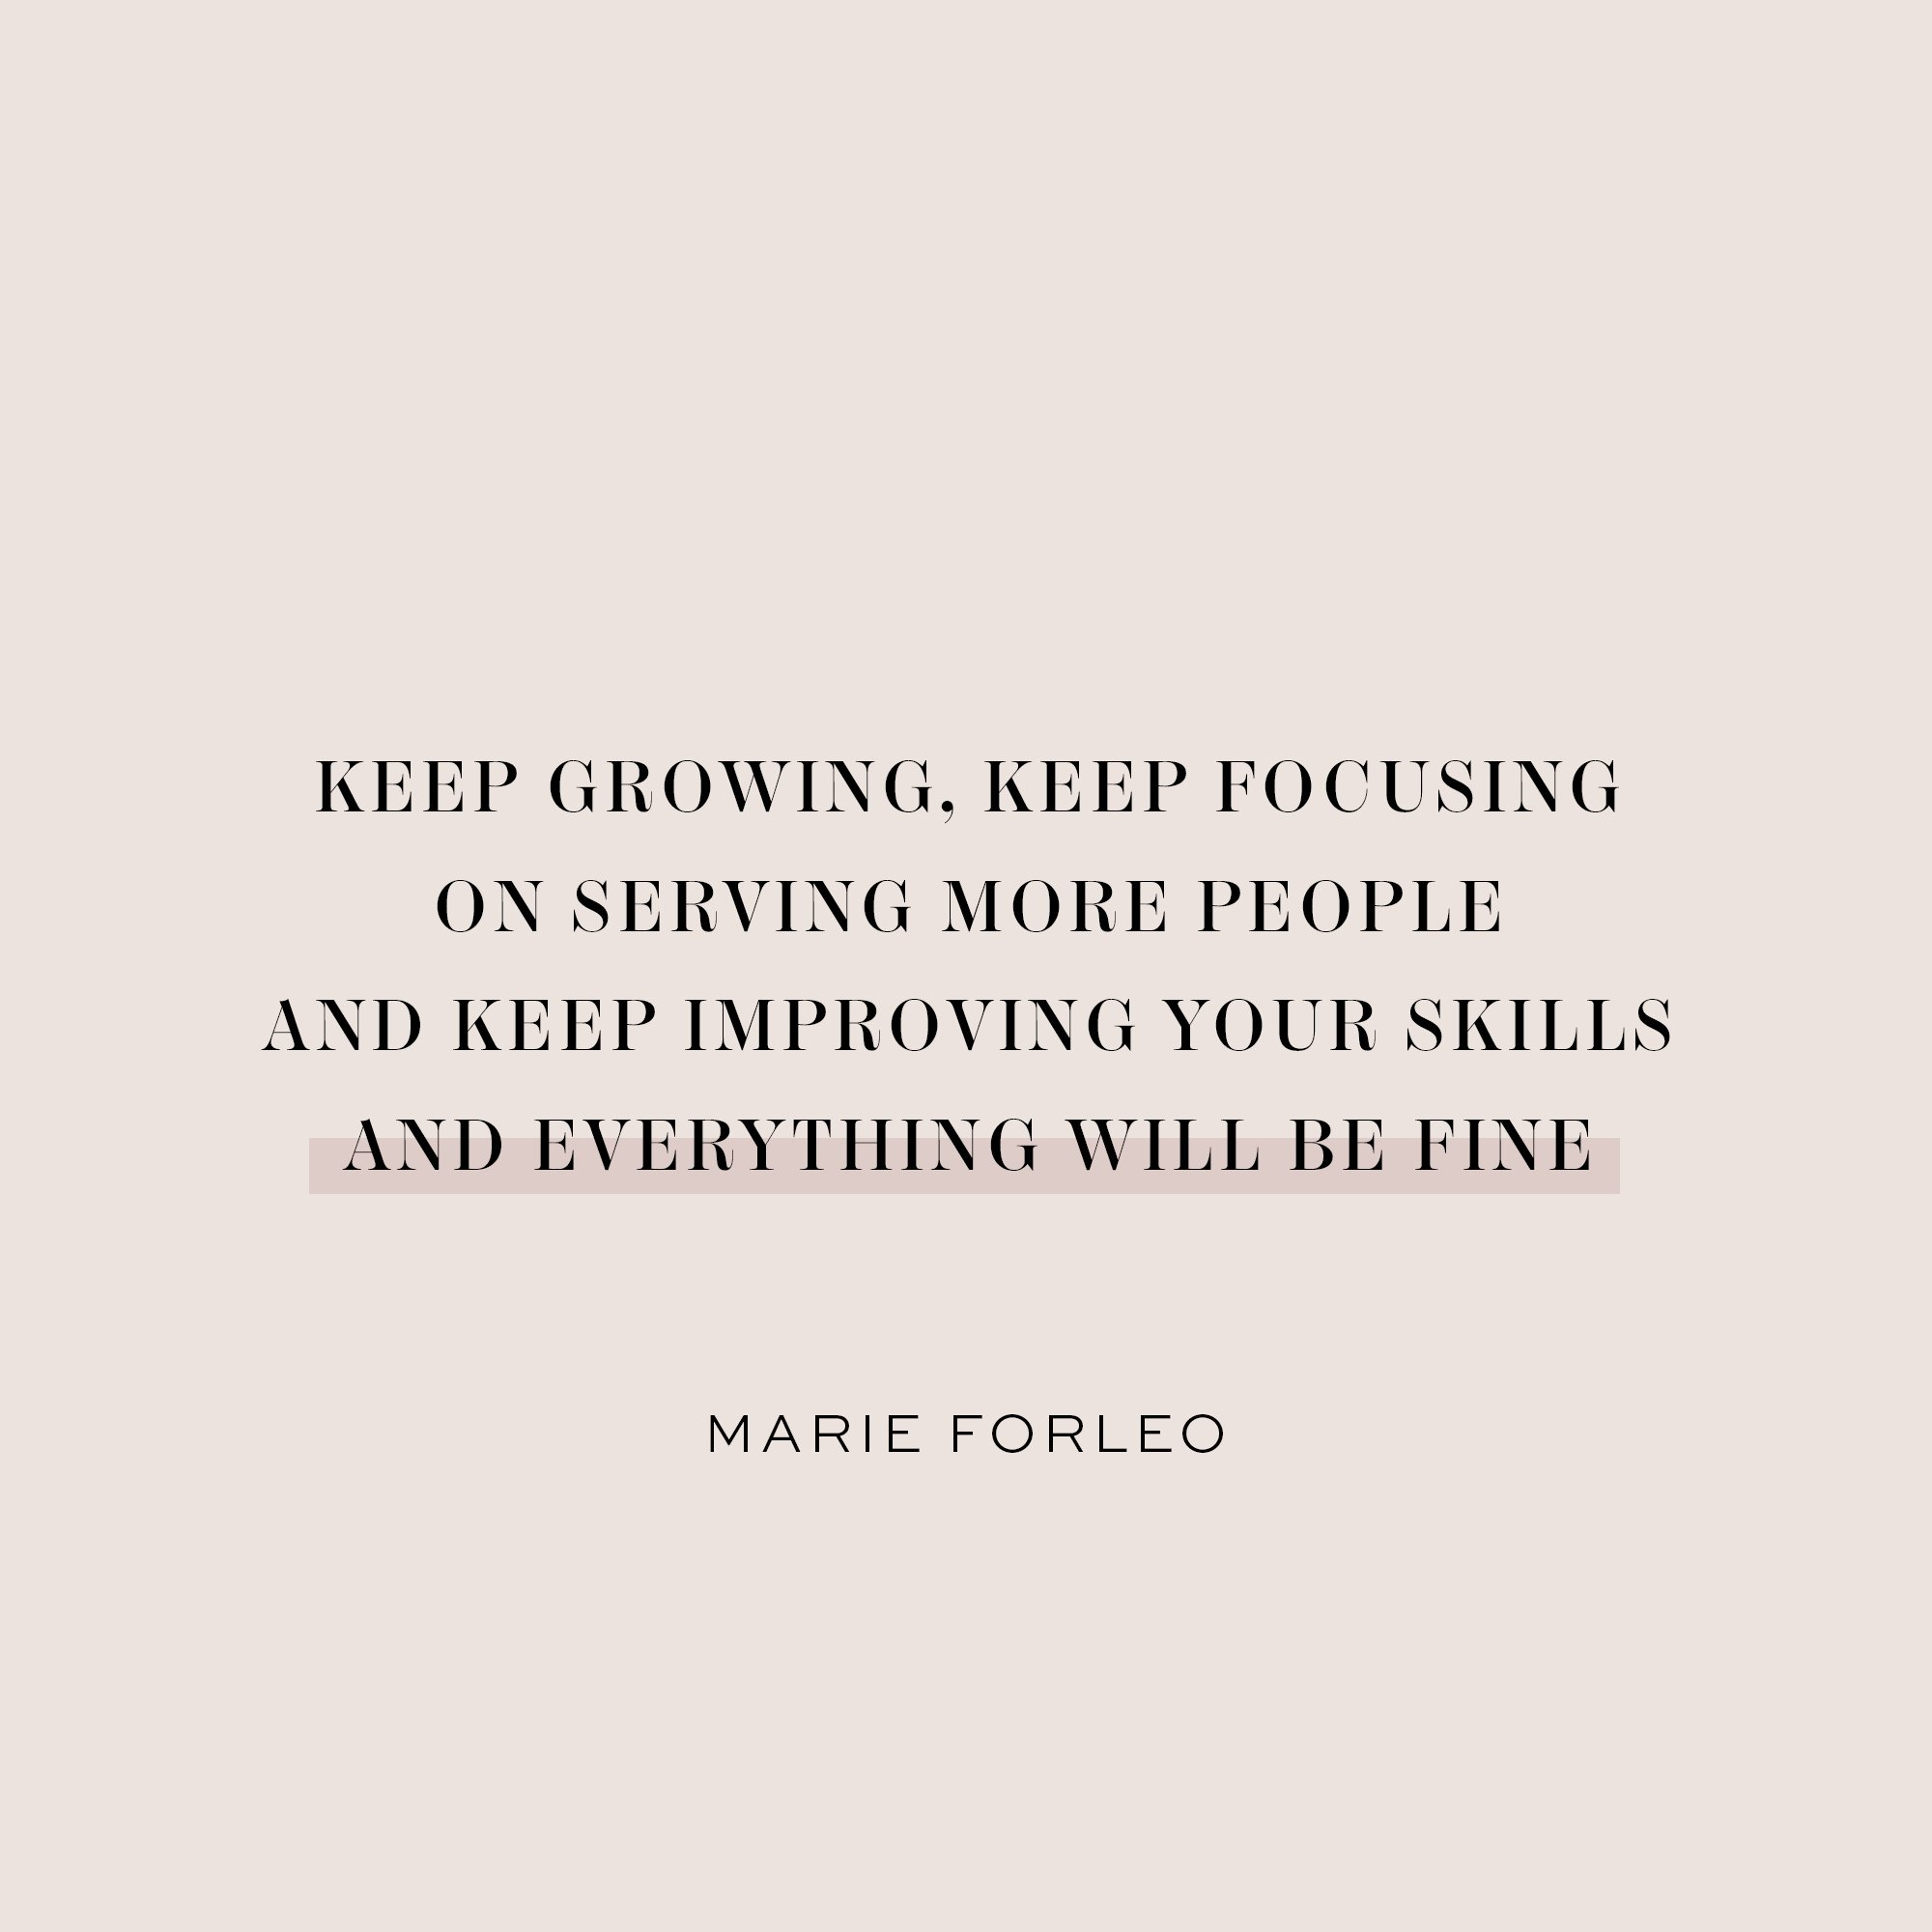 keep growing, keep focusing on serving more people and keep improving your skills, and everything will be fine.